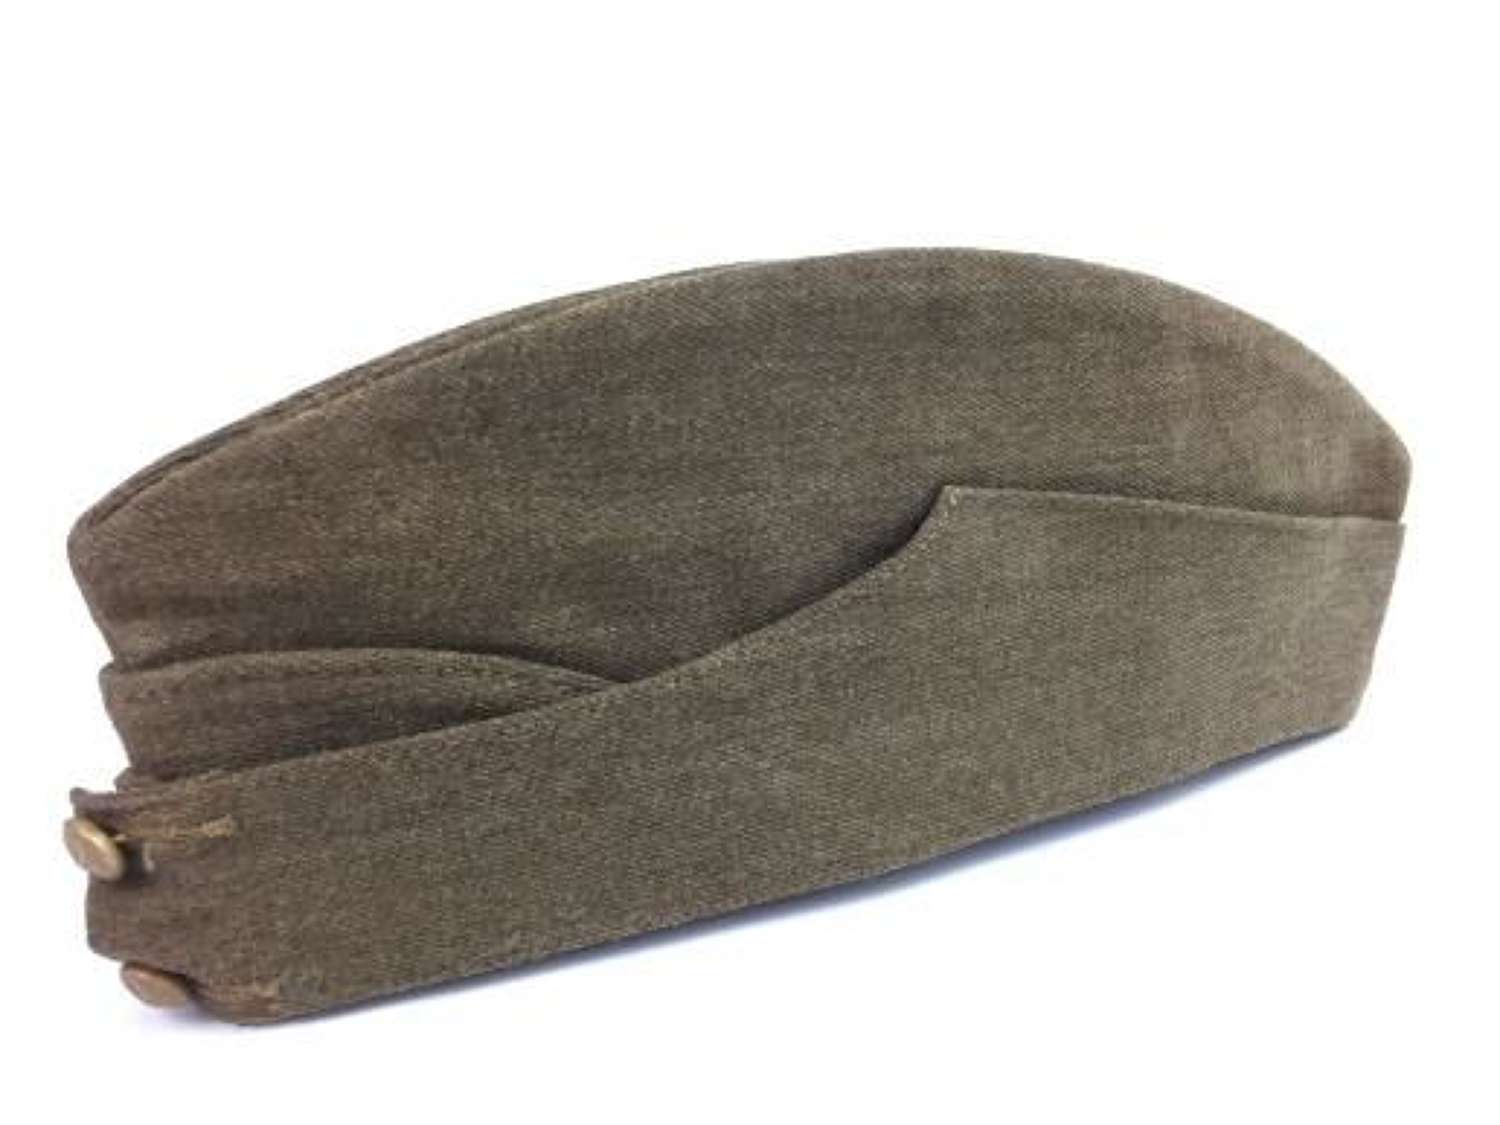 1940 Dated British Army Field Service Cap - Size 6 5/8